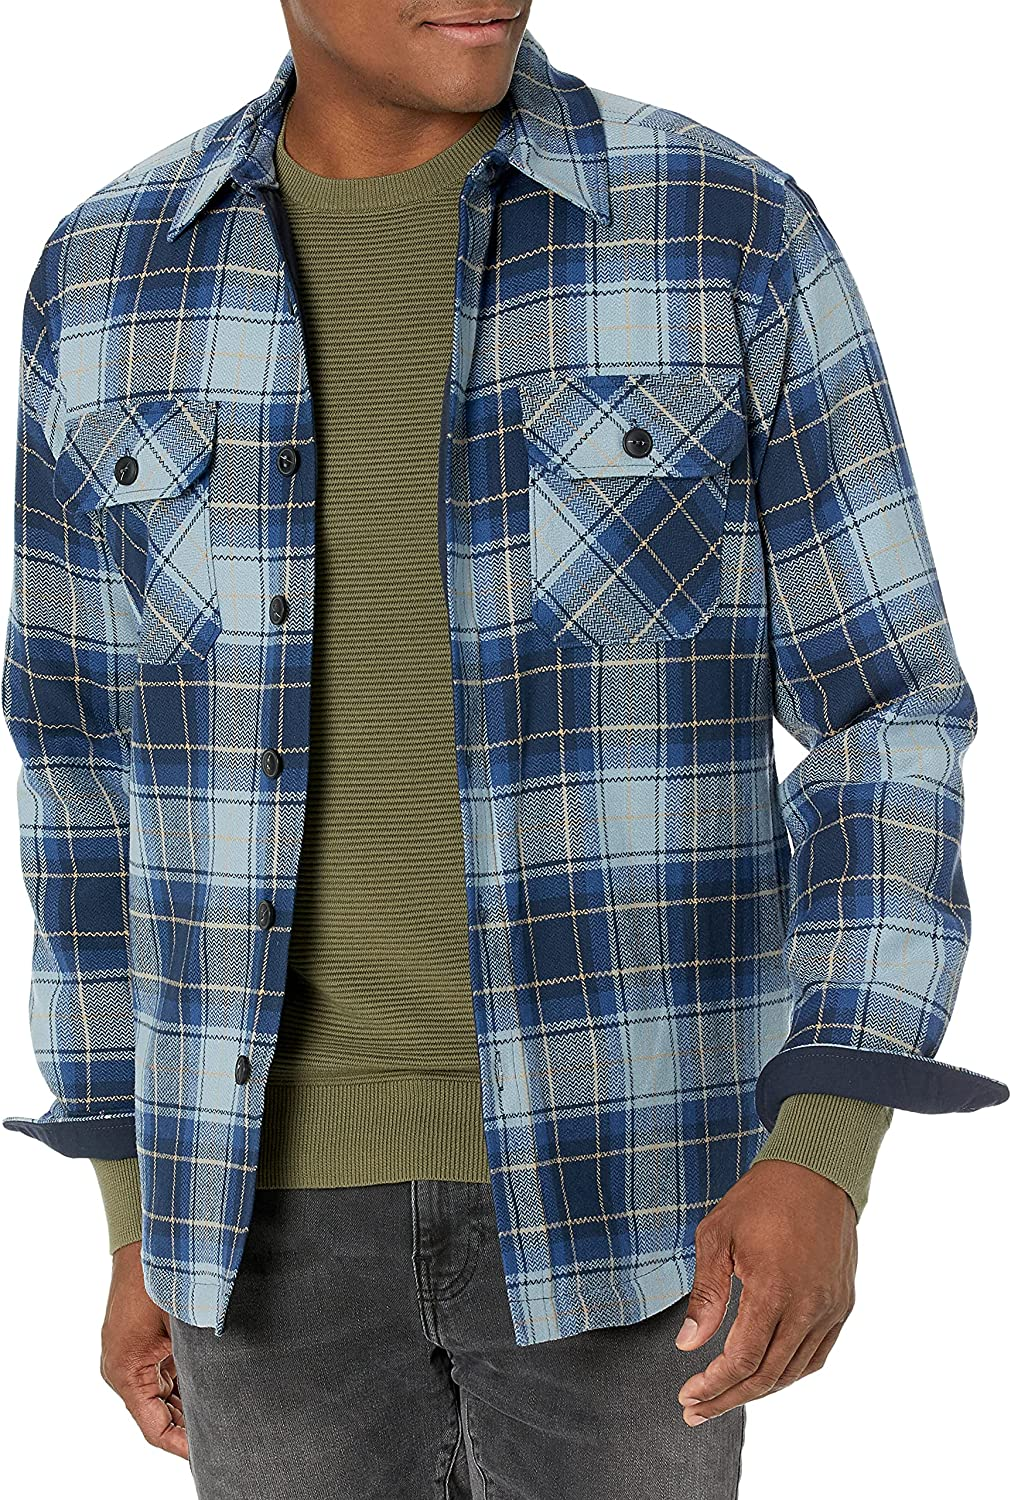 Pendleton Men's Quilted CPO shipfree in Shirt Over item handling Wool Jacket